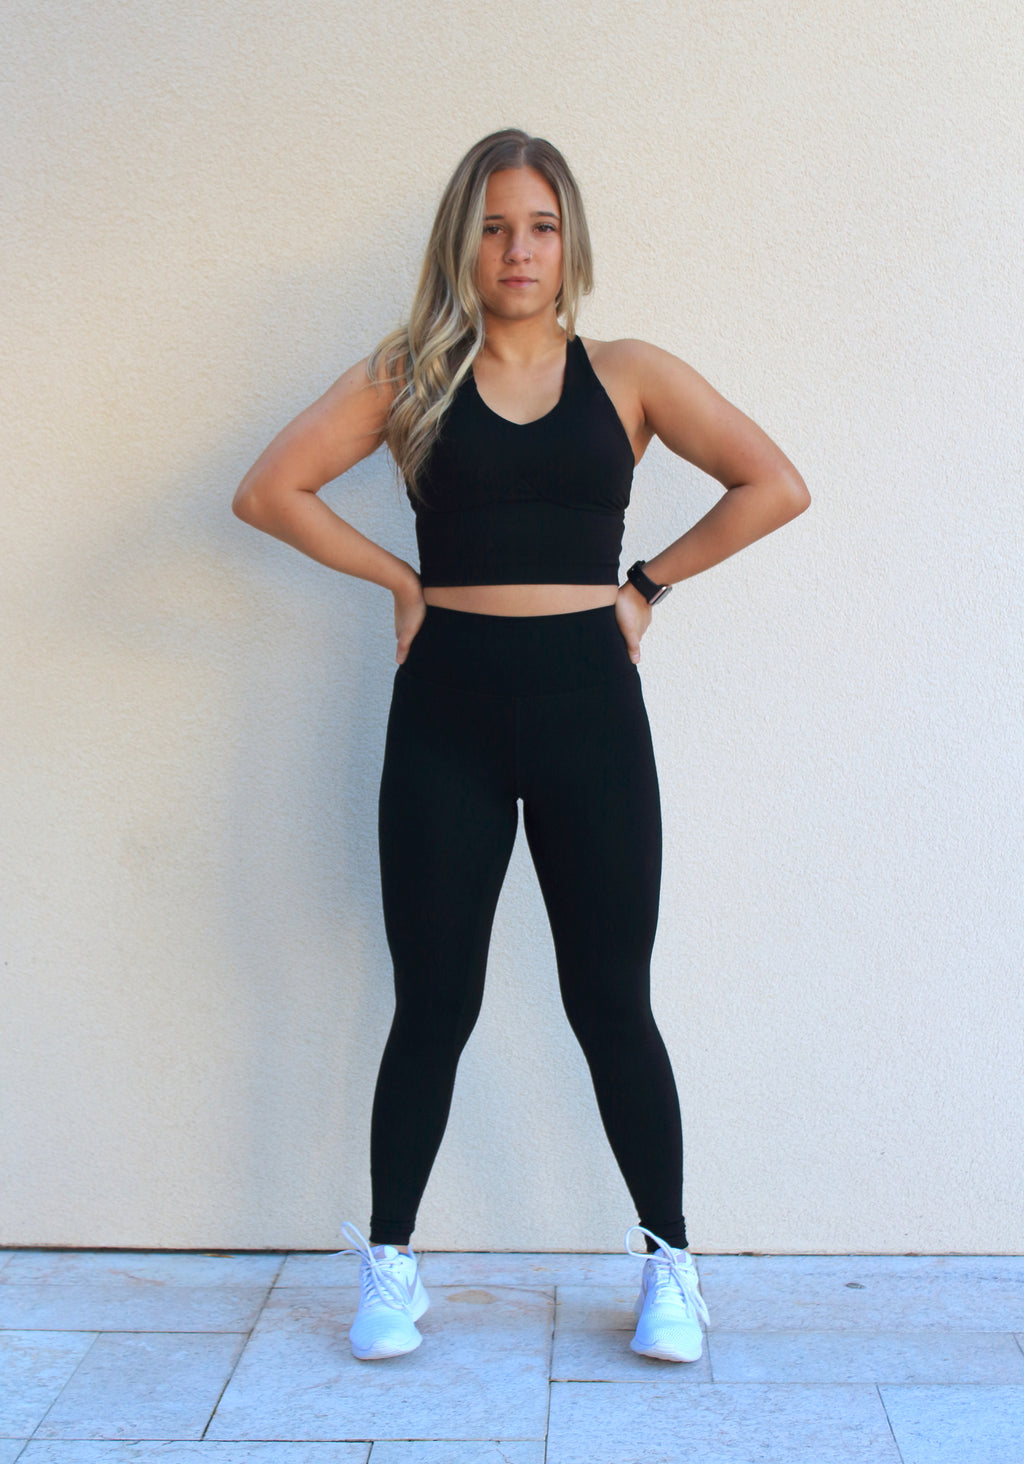 A.M.F.C. Freedom Leggings (Midnight)